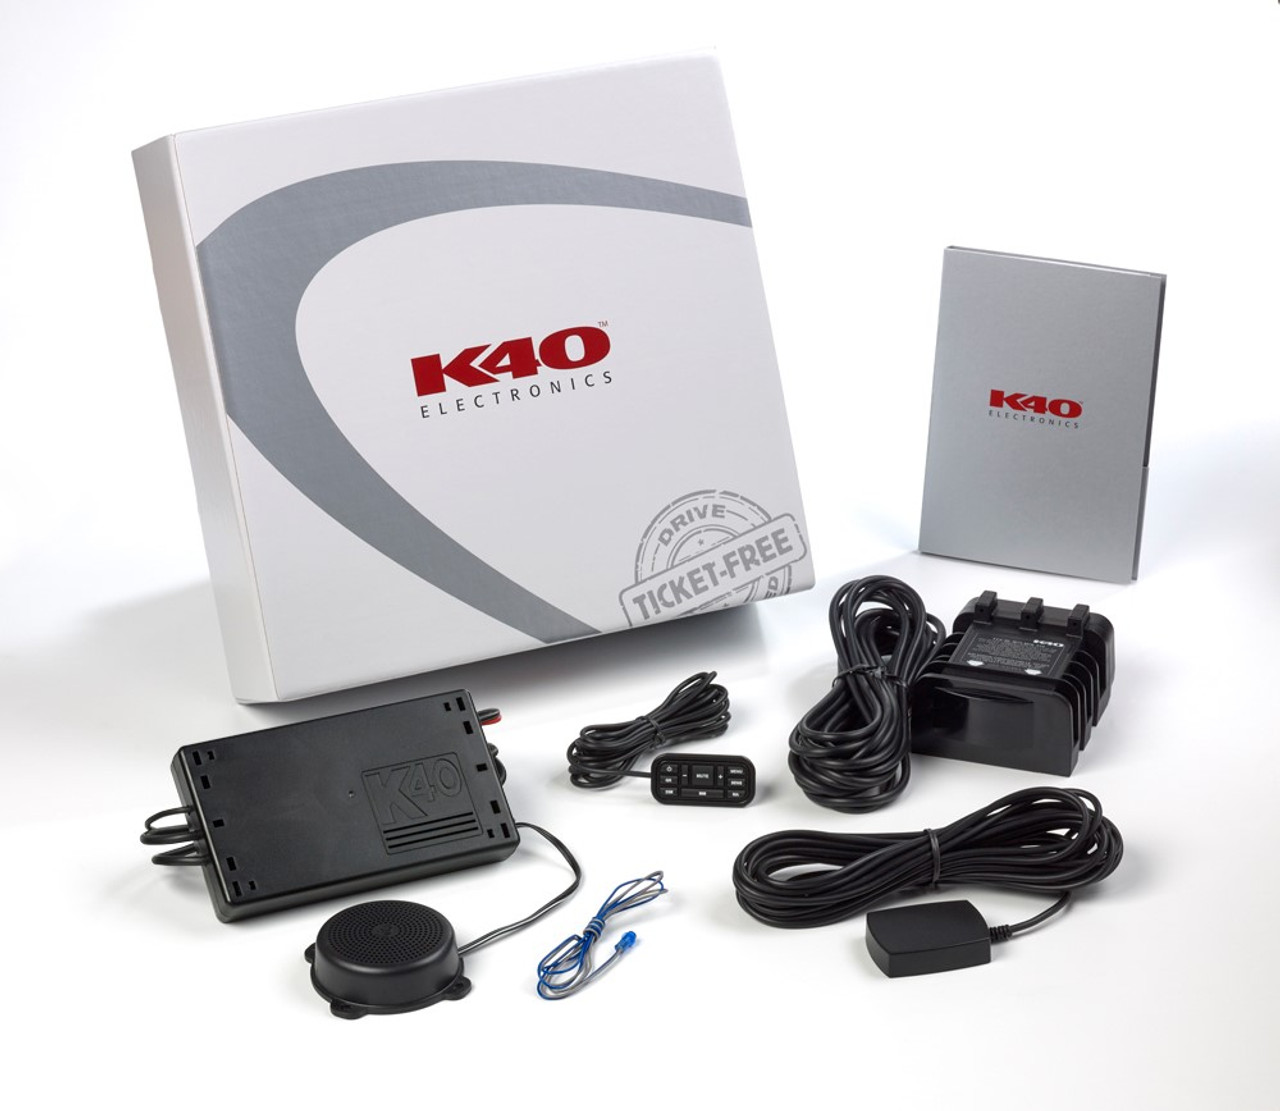 K40 RL200i Single Remote Radar w/GPS on